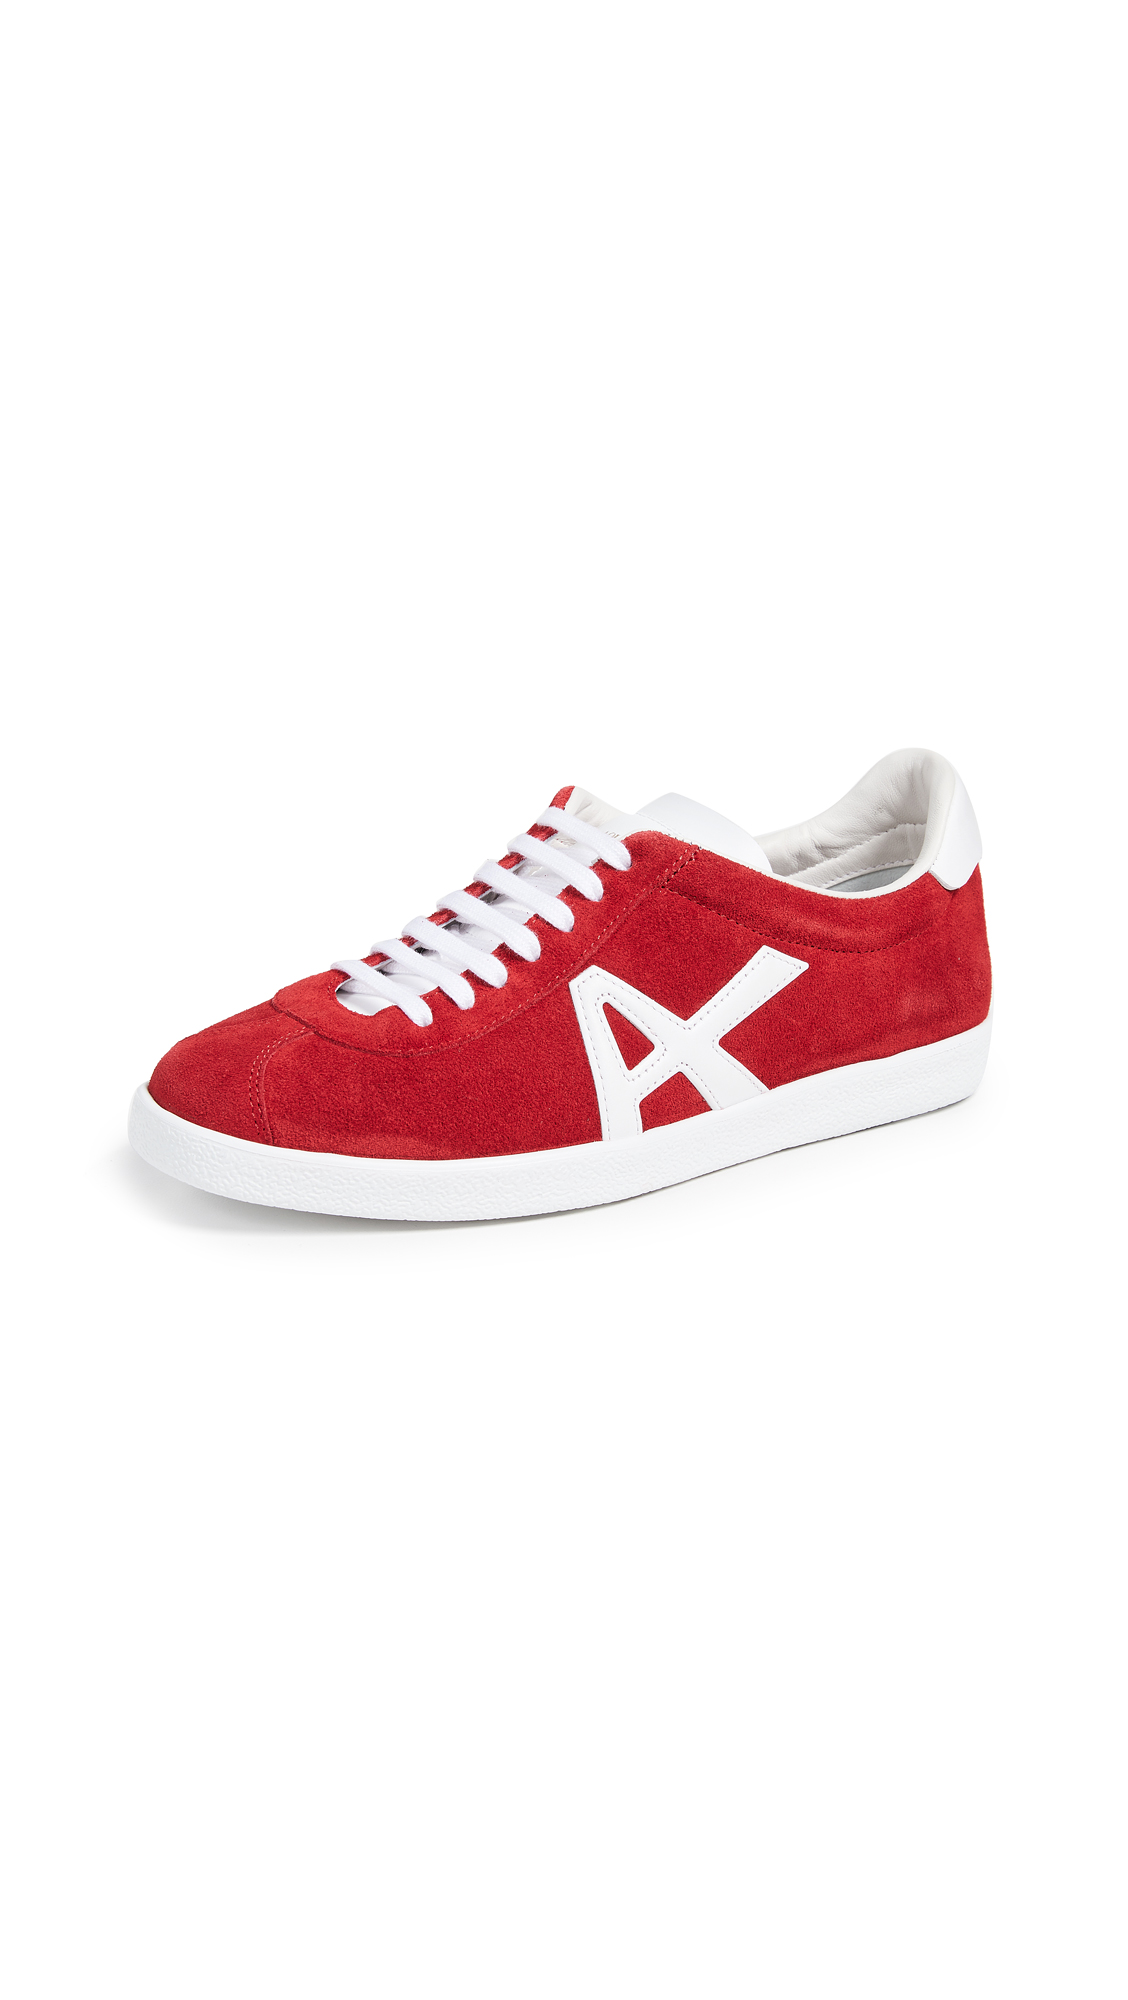 Aquazzura The A Sneakers - Lipstick/White